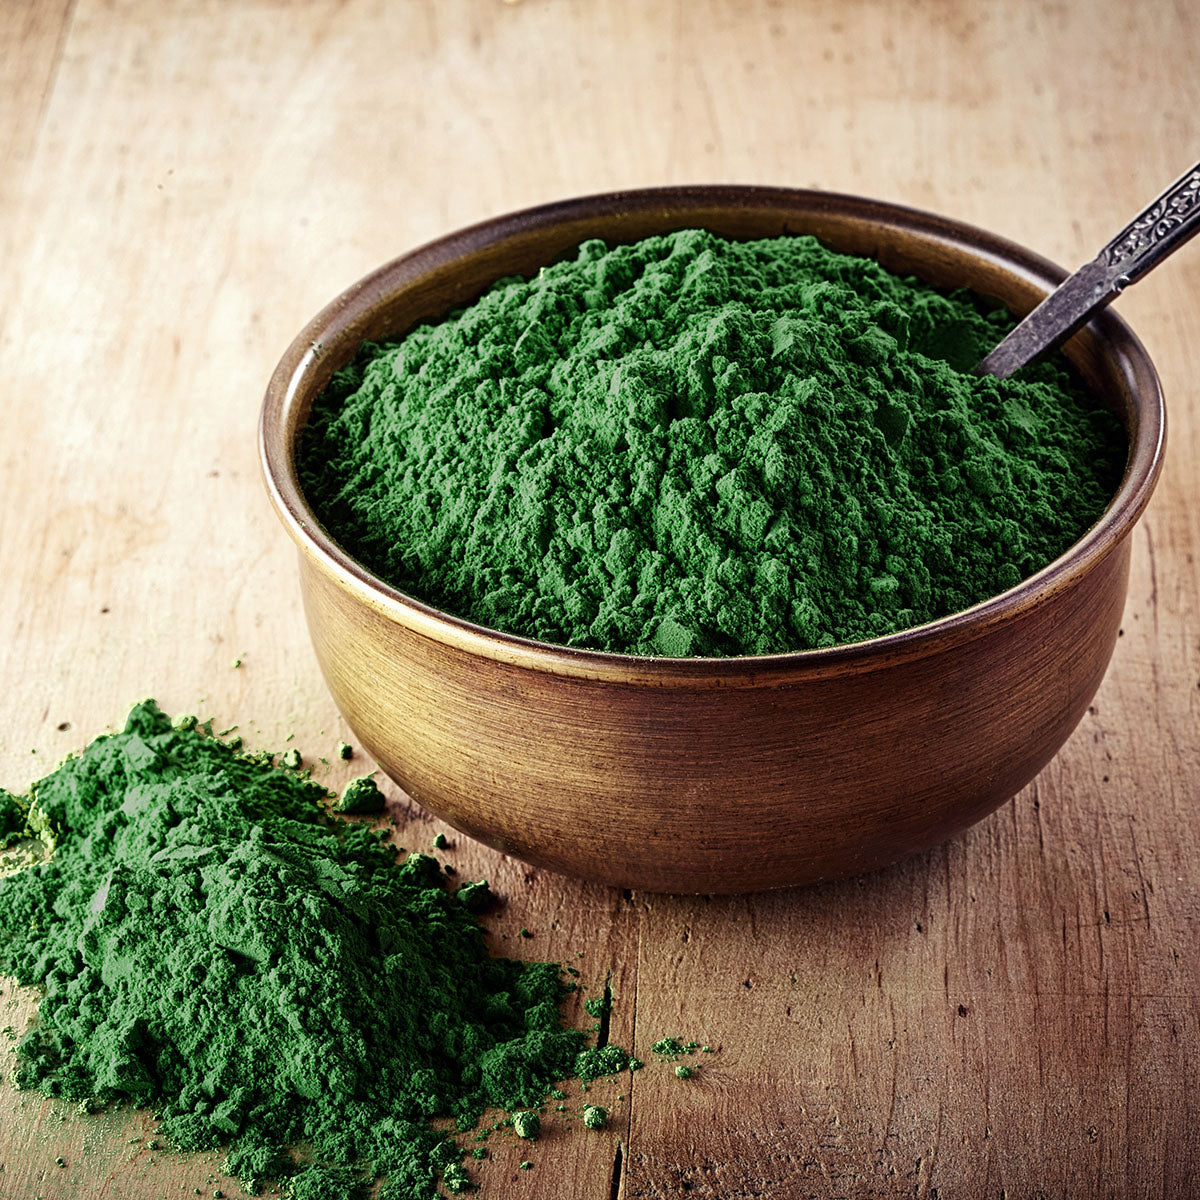 How To Effectively Detox From These Hidden Everyday Toxins with Chlorella